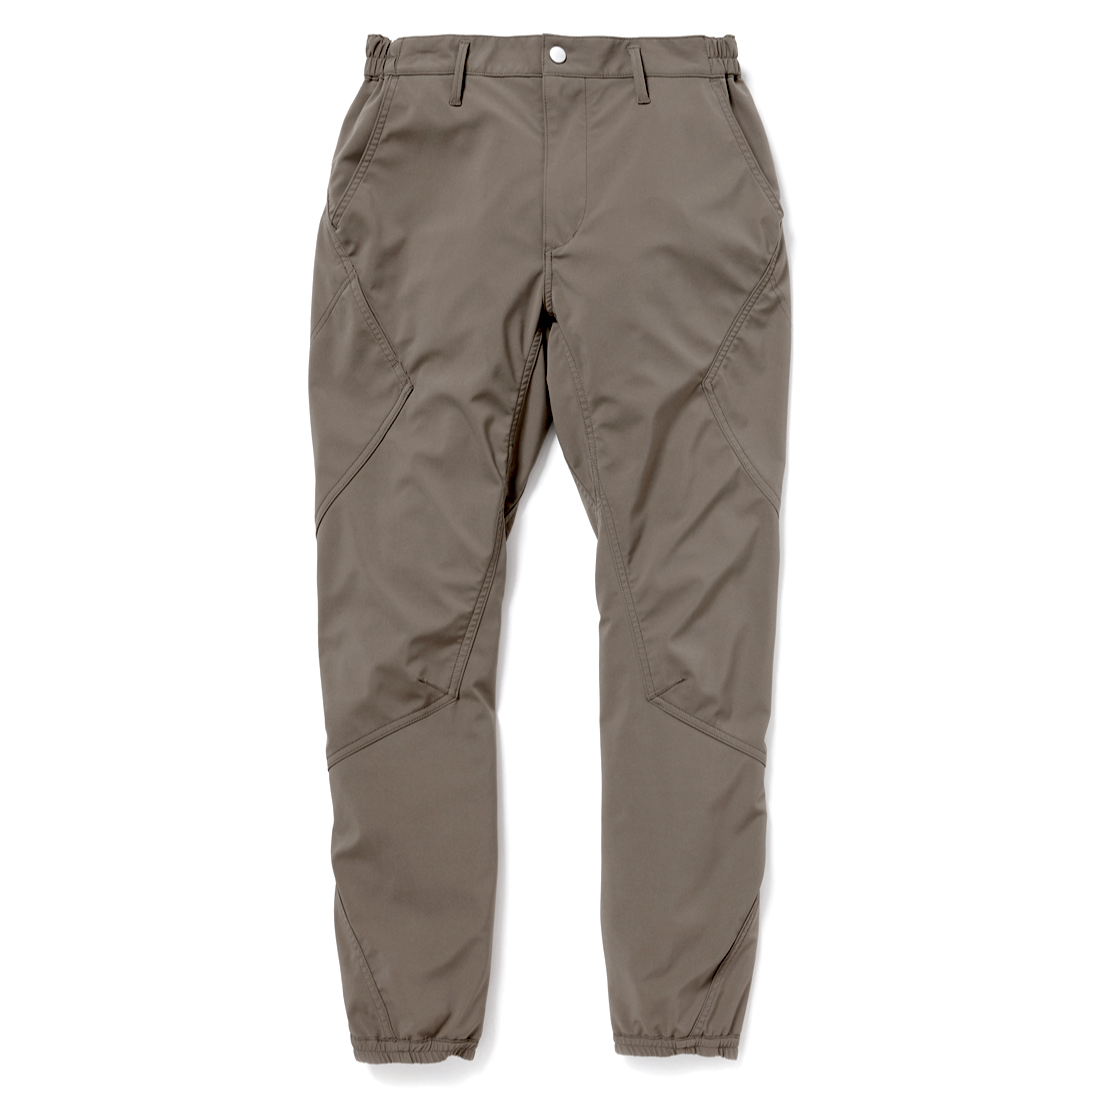 nonnative / CYCLIST EASY RIB PANTS TAPERED FIT N/P TAFFETA STRETCH WITH WINDSTOPPER 3L -EUCALIPTUS